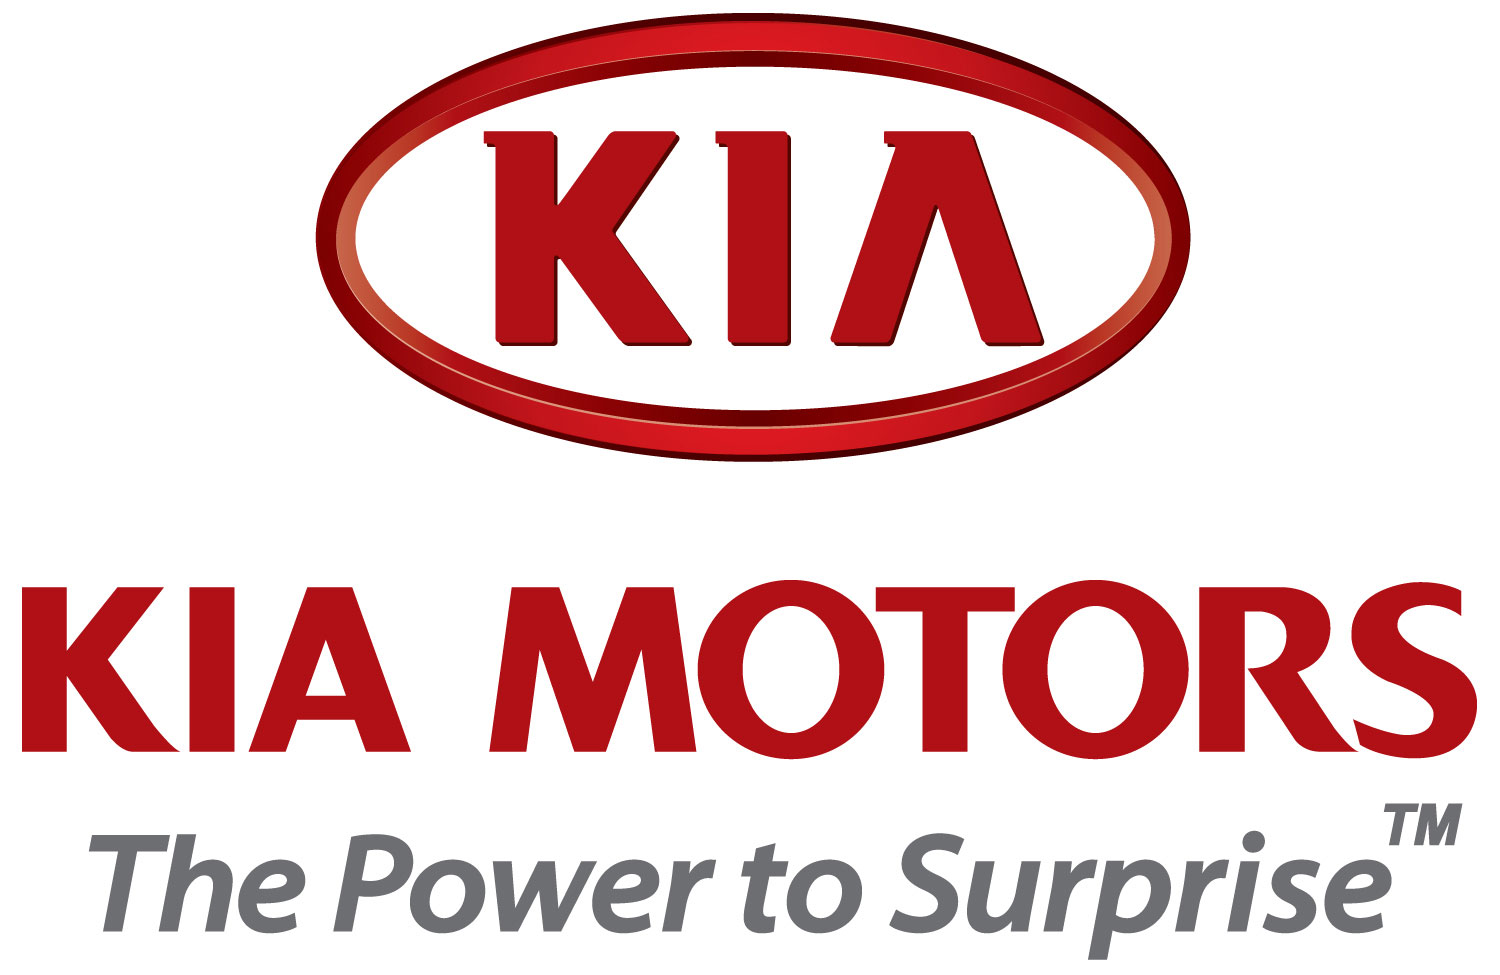 Kia logo and kia slogan